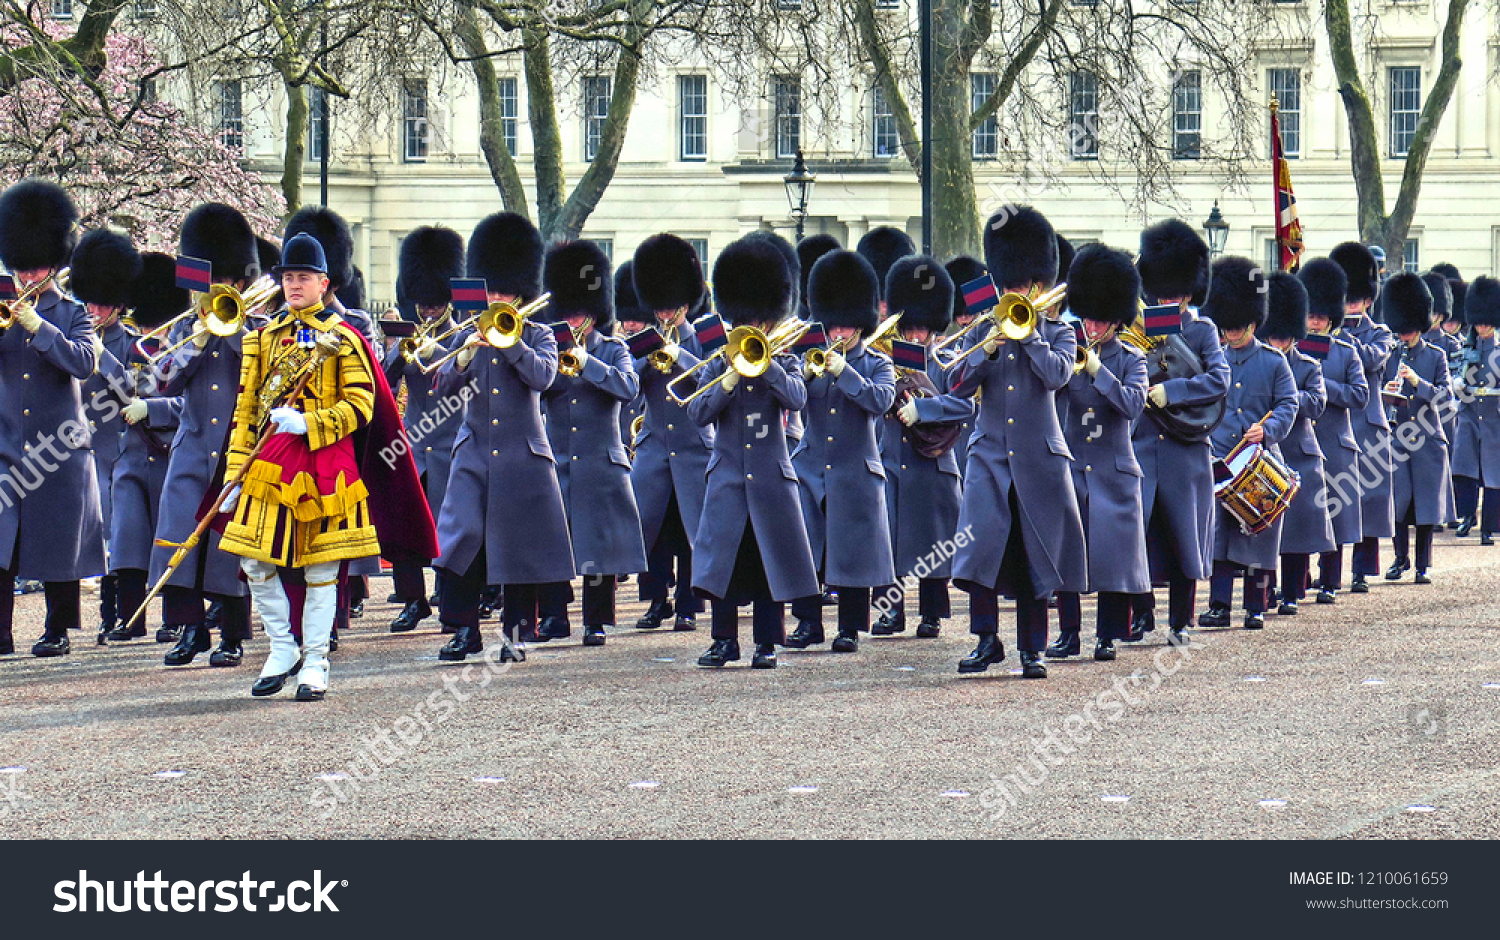 LONDON 15.03.2015. British Royal guards and orchestra perform the Changing of the Guard in Buckingham Palace. Queen's Guard is one of the major touristat tractions in UK.